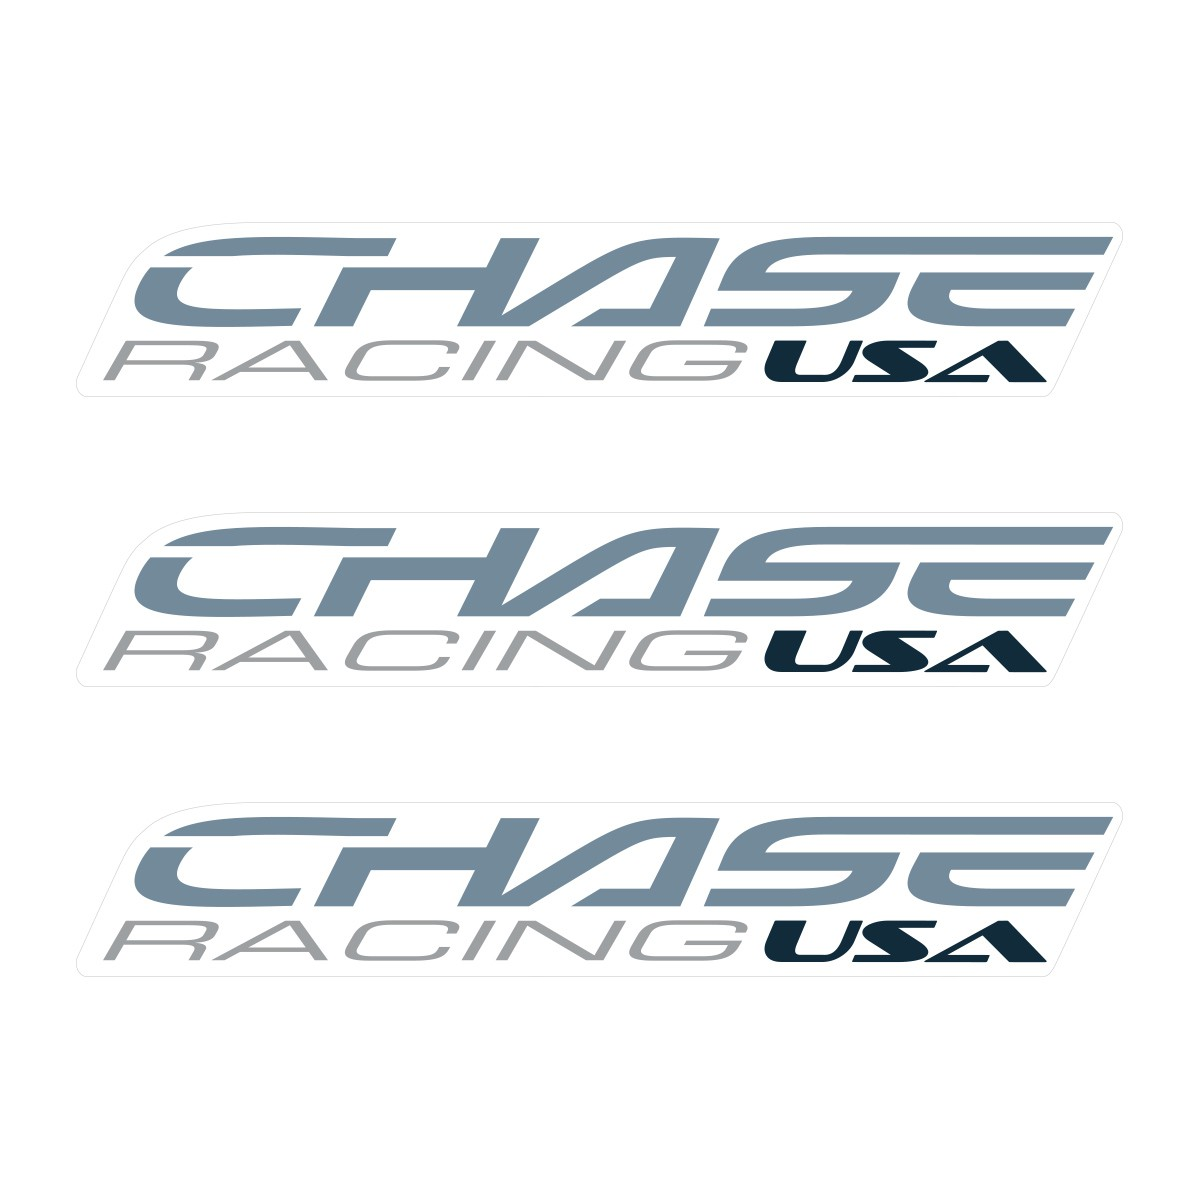 CHASE SMALL STICKER 110x18MM PACK X 3 LIGHT GREY